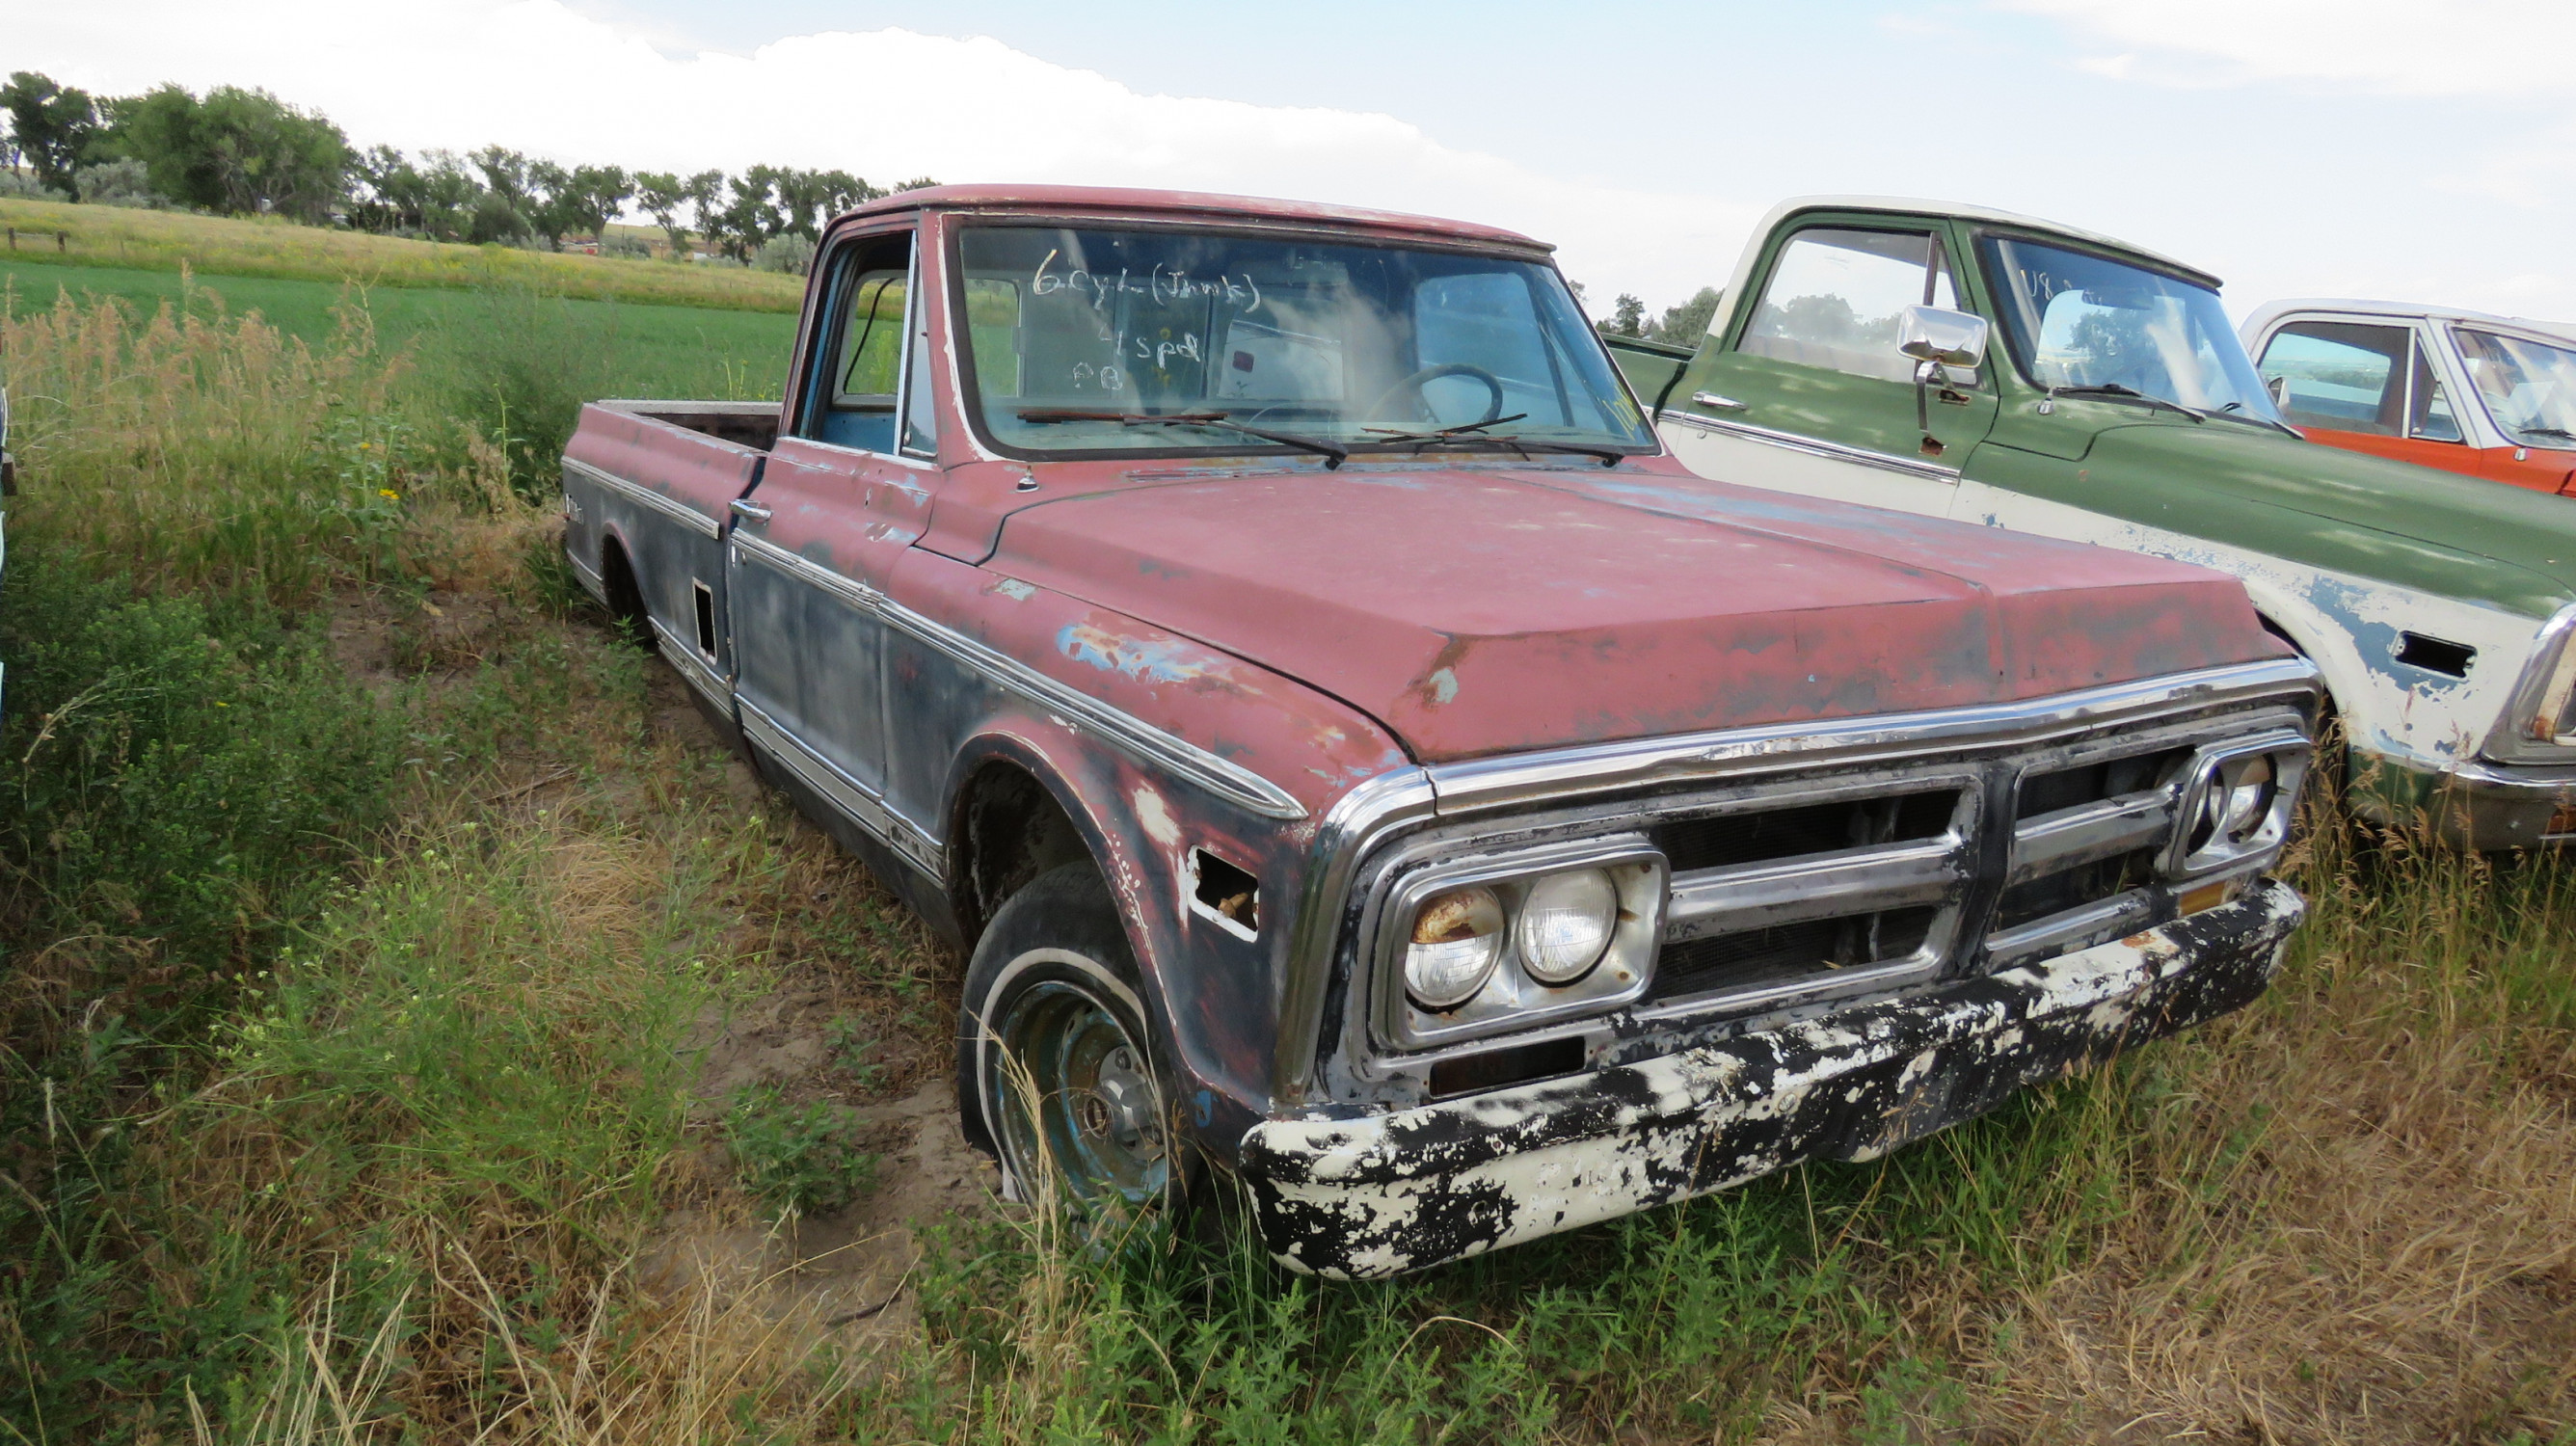 1972 GMC PICKUP FOR RESTORE - Image 1